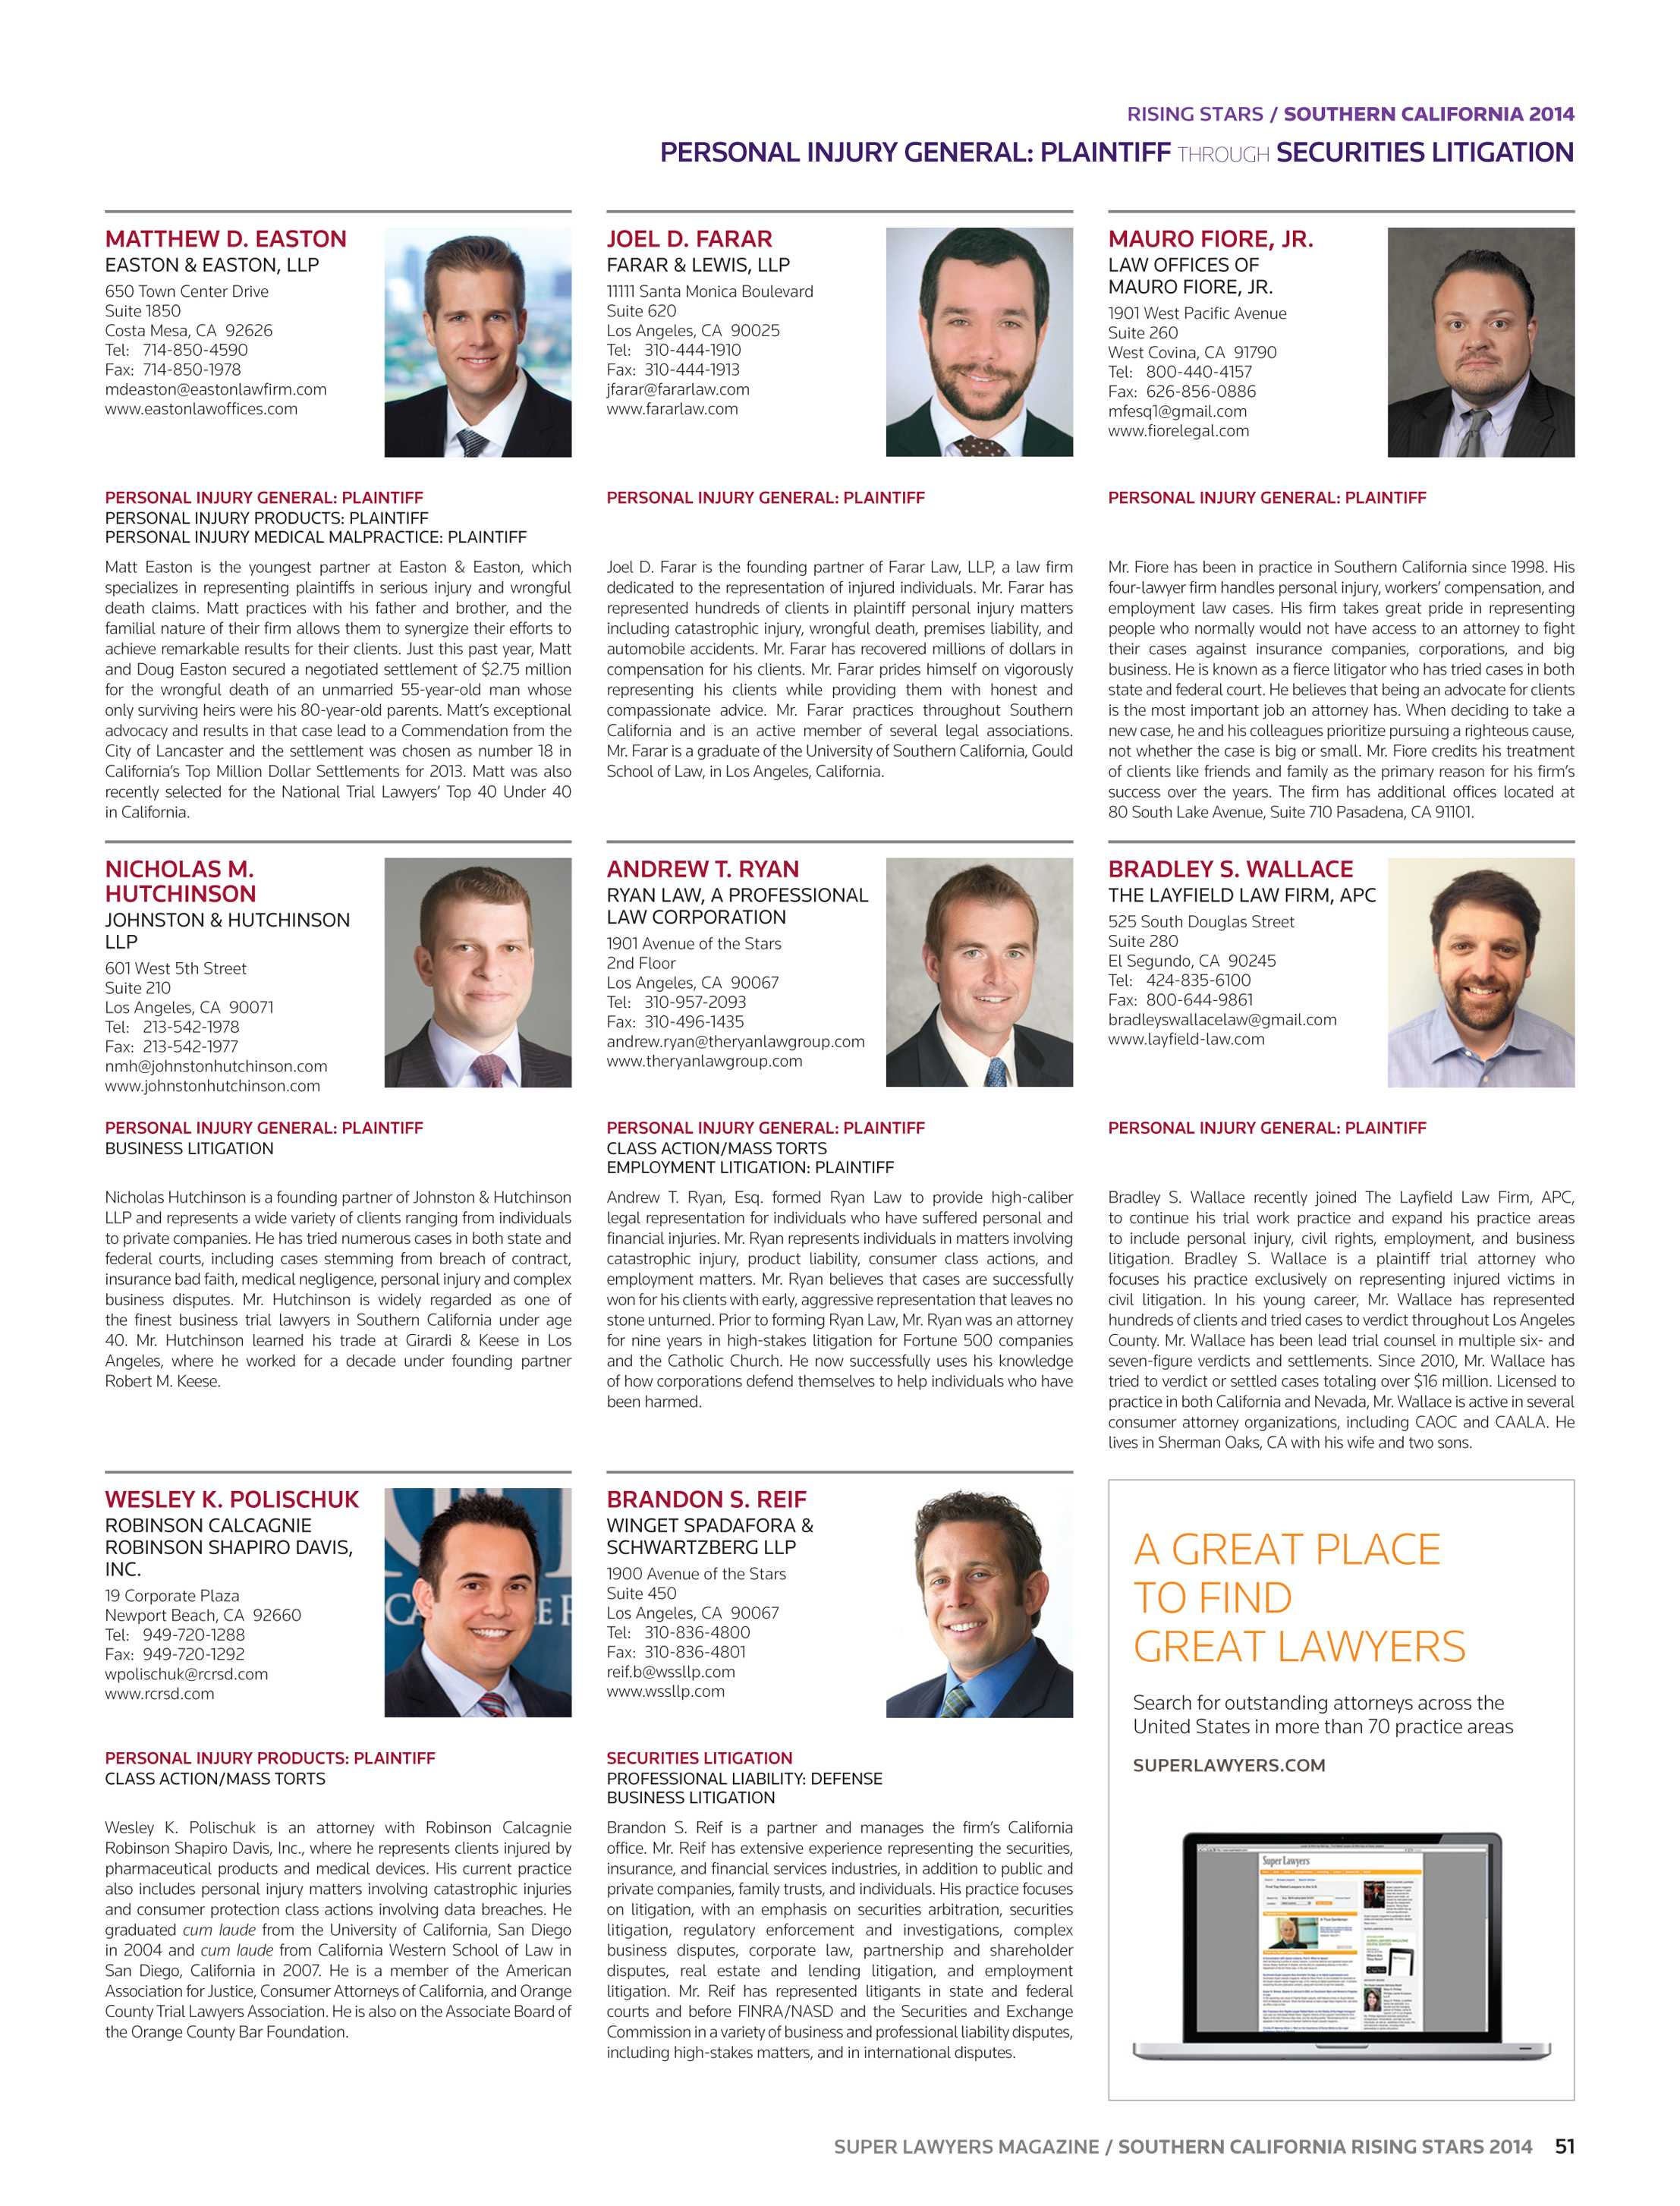 Super Lawyers Southern California Rising Stars 2014 Page 51